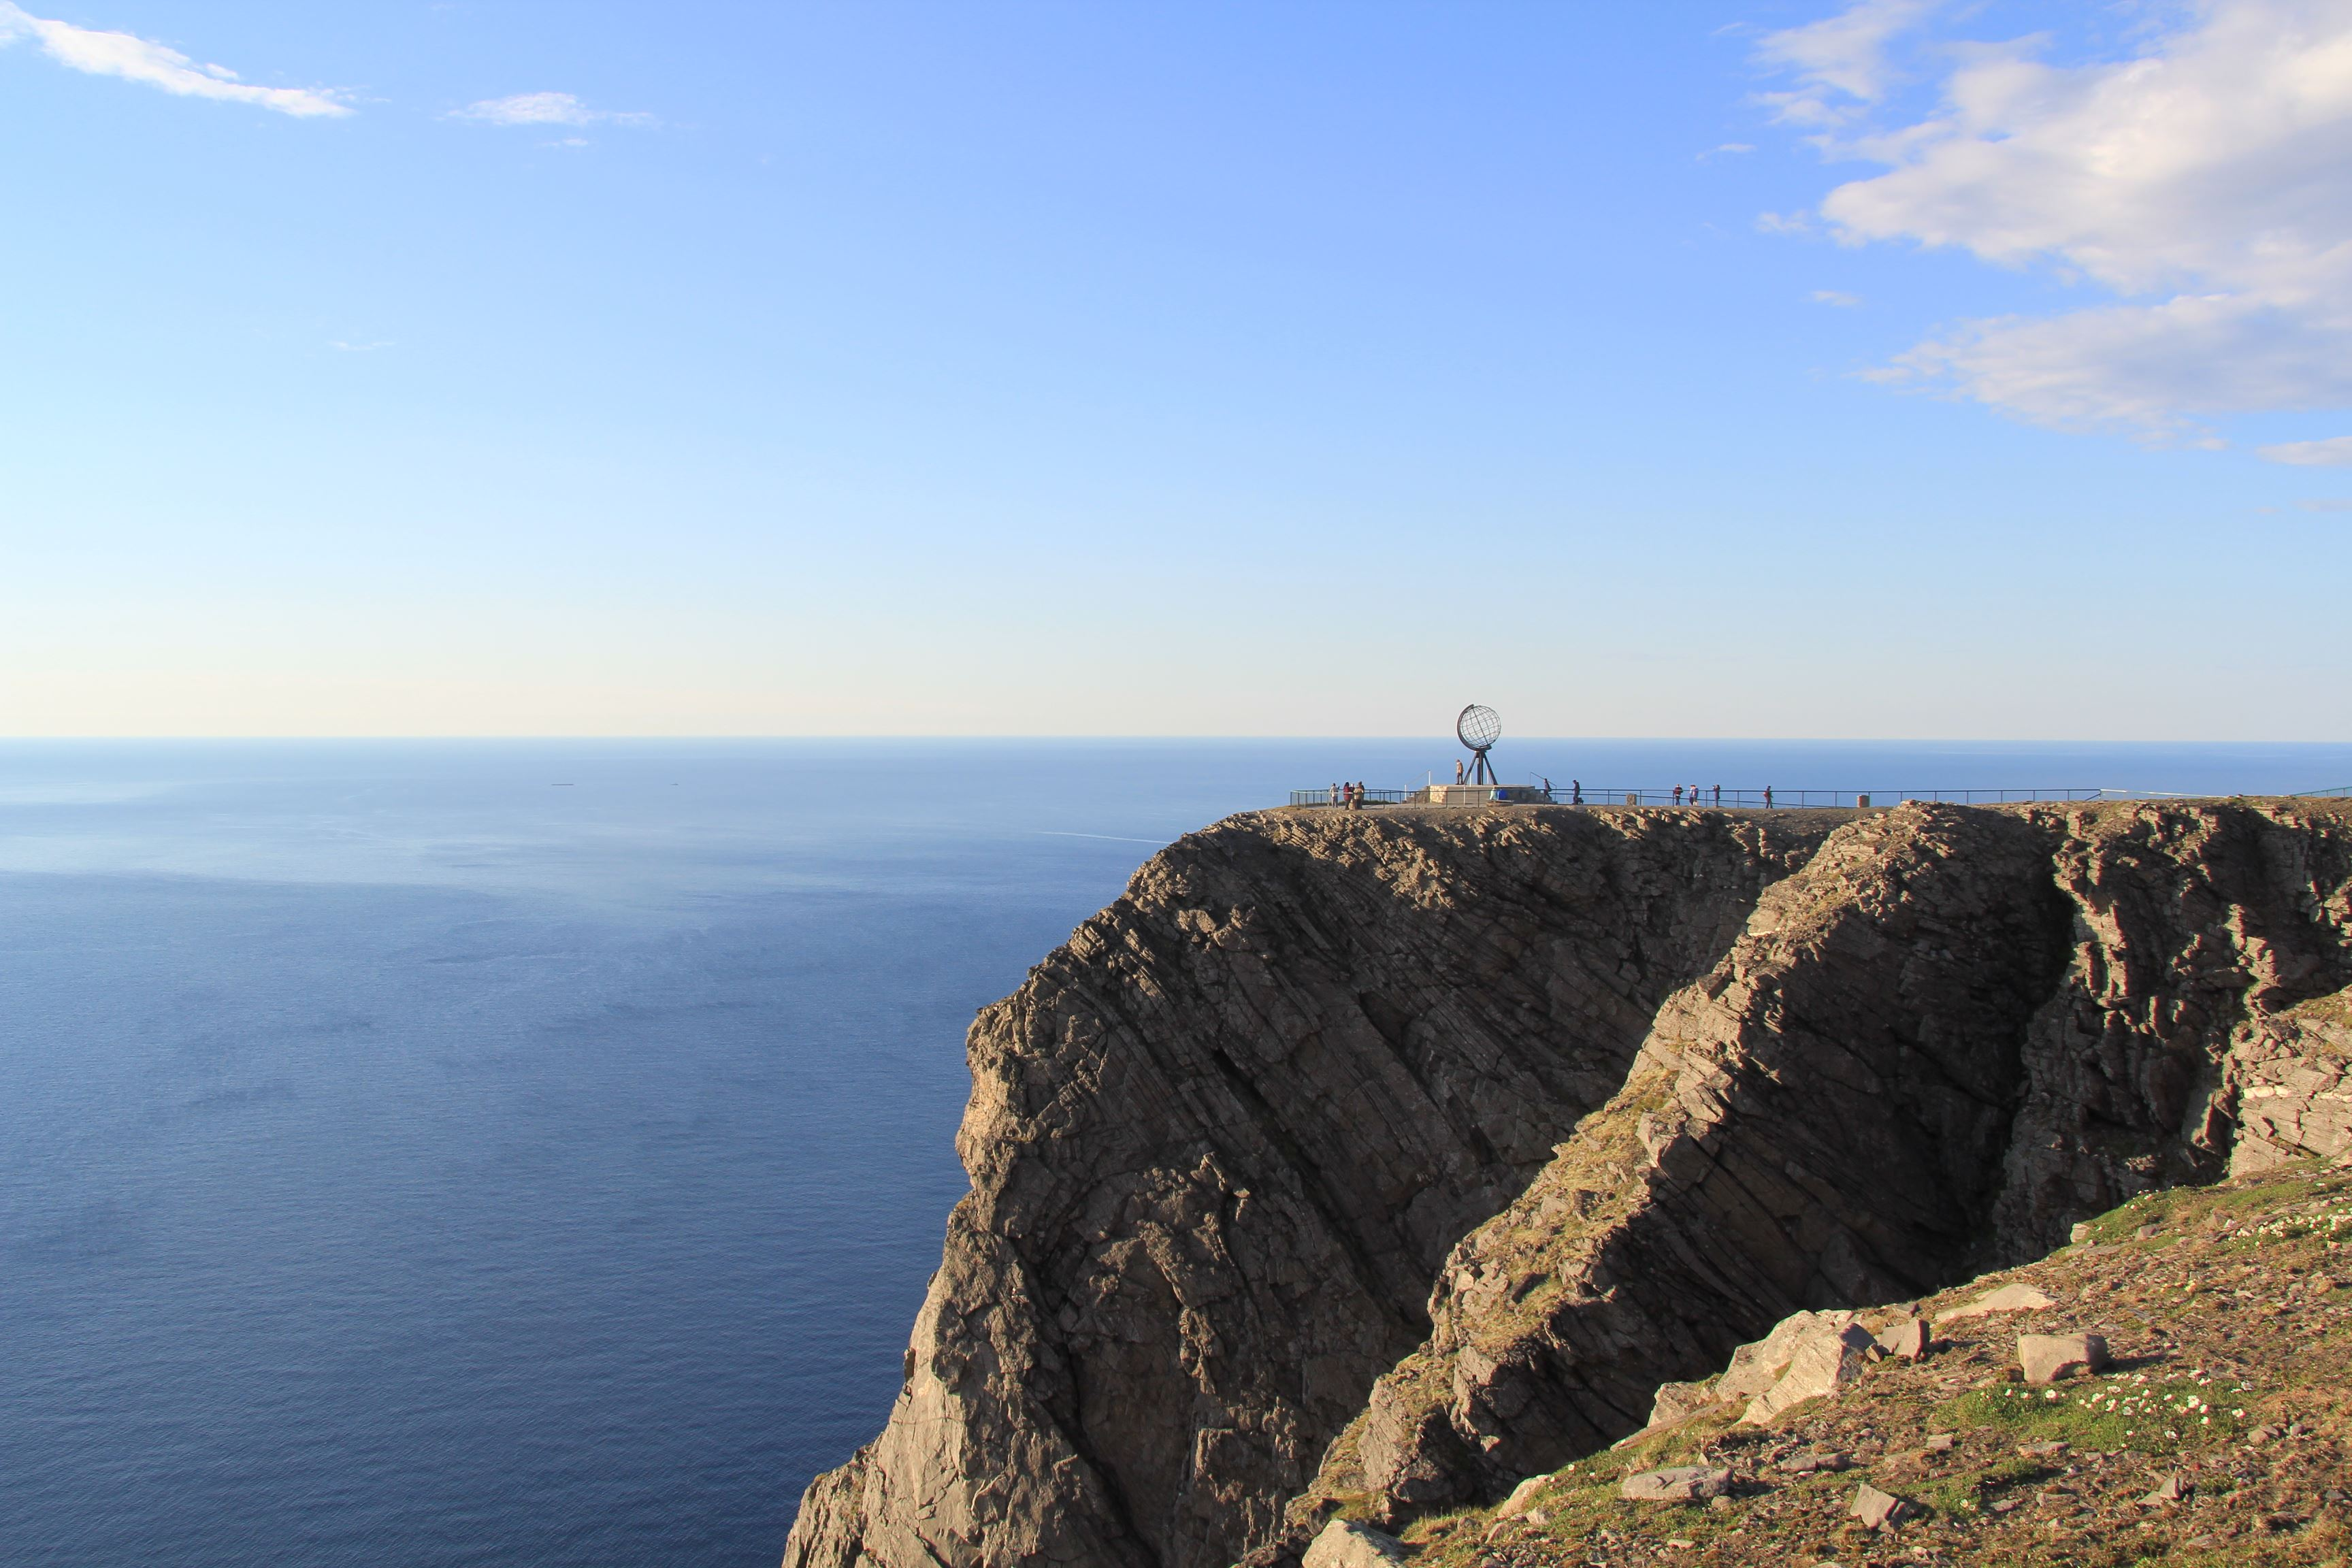 Helicopter sightseeing with landing at North Cape